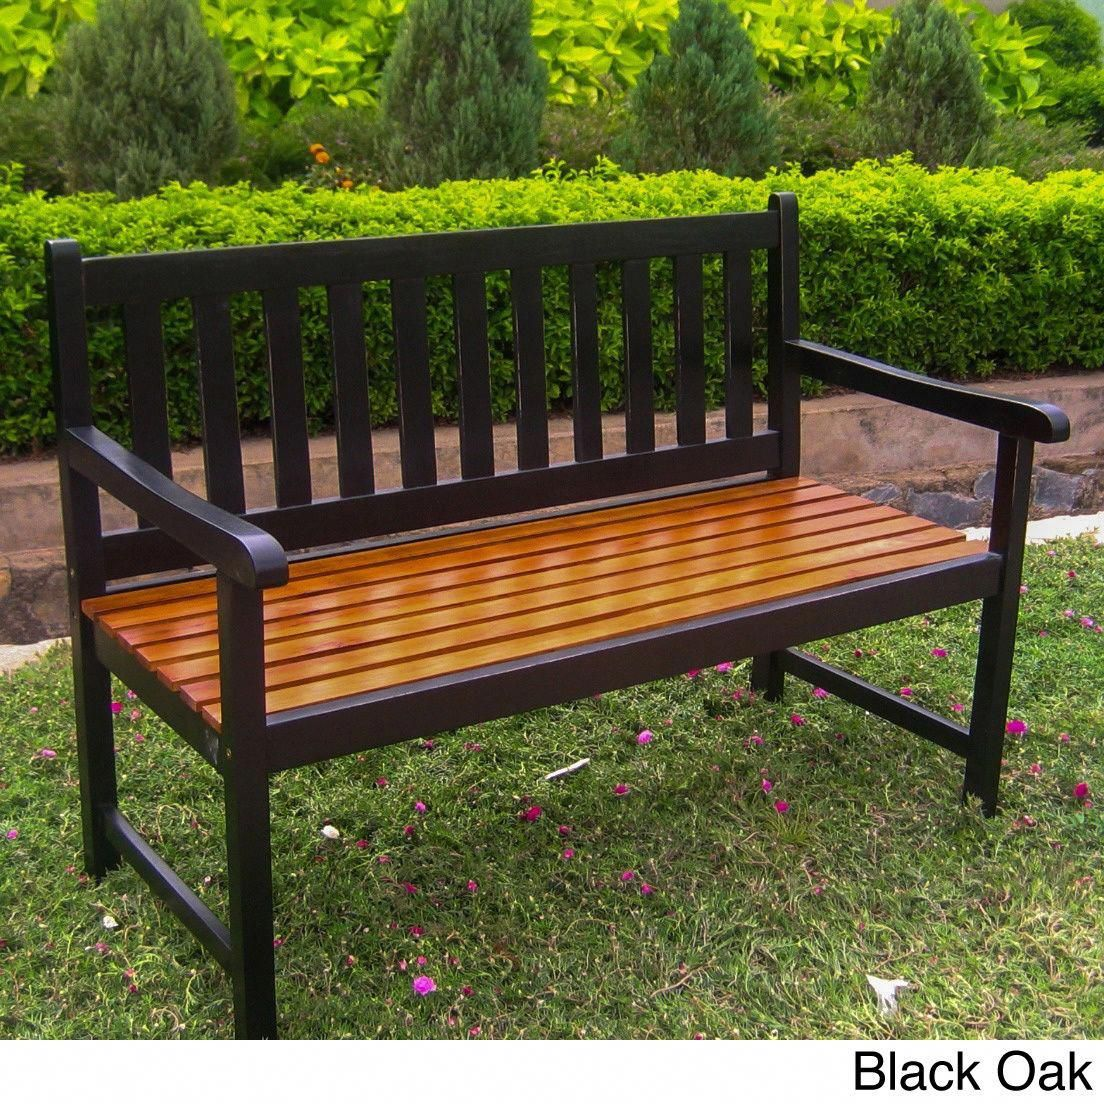 This Attractive Solid Acacia Wood Bench Will Help You Relax In Style The Three Vibrant Color Options Are Wooden Garden Benches Outdoor Furniture Outdoor Bench